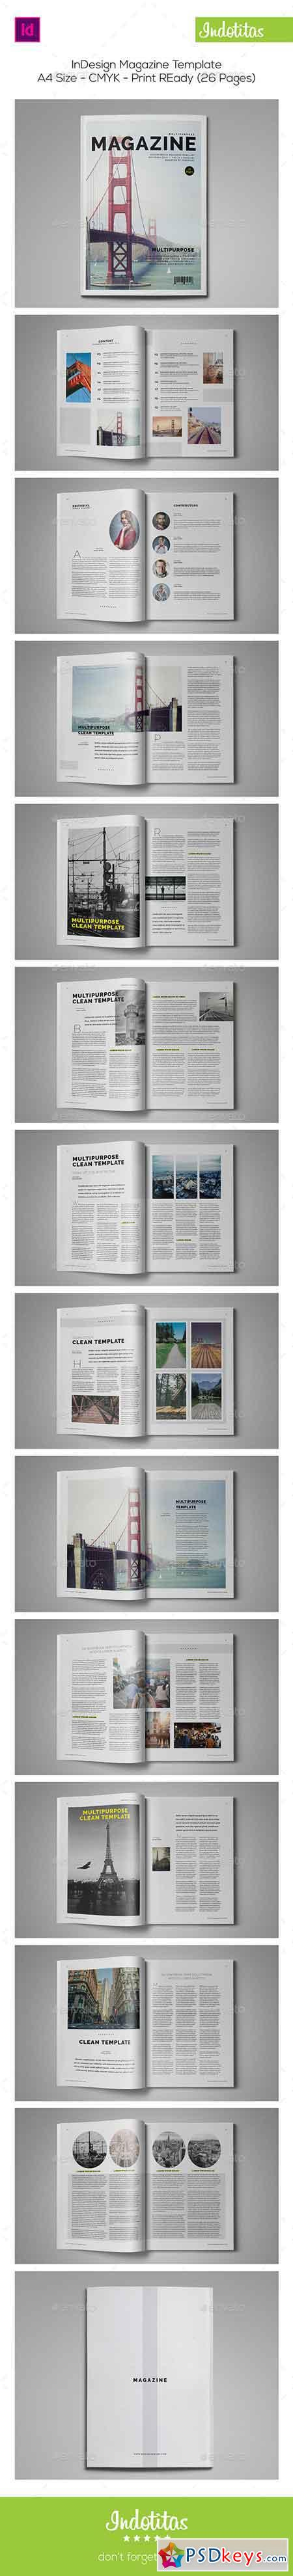 free indesign magazine templates - indesign magazine template 9365672 free download